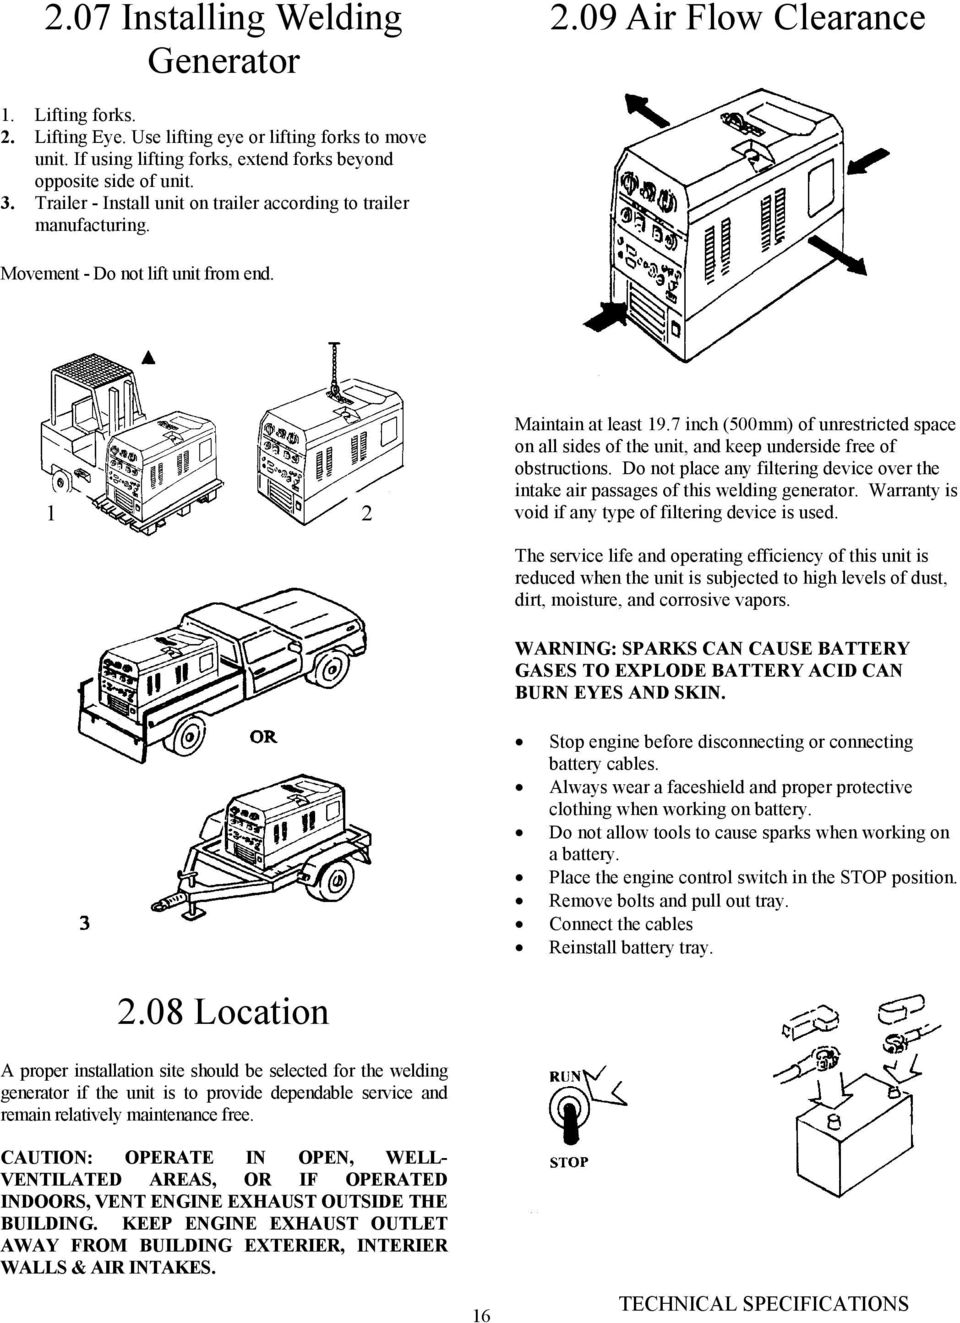 Raider 10000 Pro Owners Manual Dc Cc Cv Welding Generator Stick Schematic Diagram 1 2 Maintain At Least 197 Inch 500mm Of Unrestricted Space On All Sides